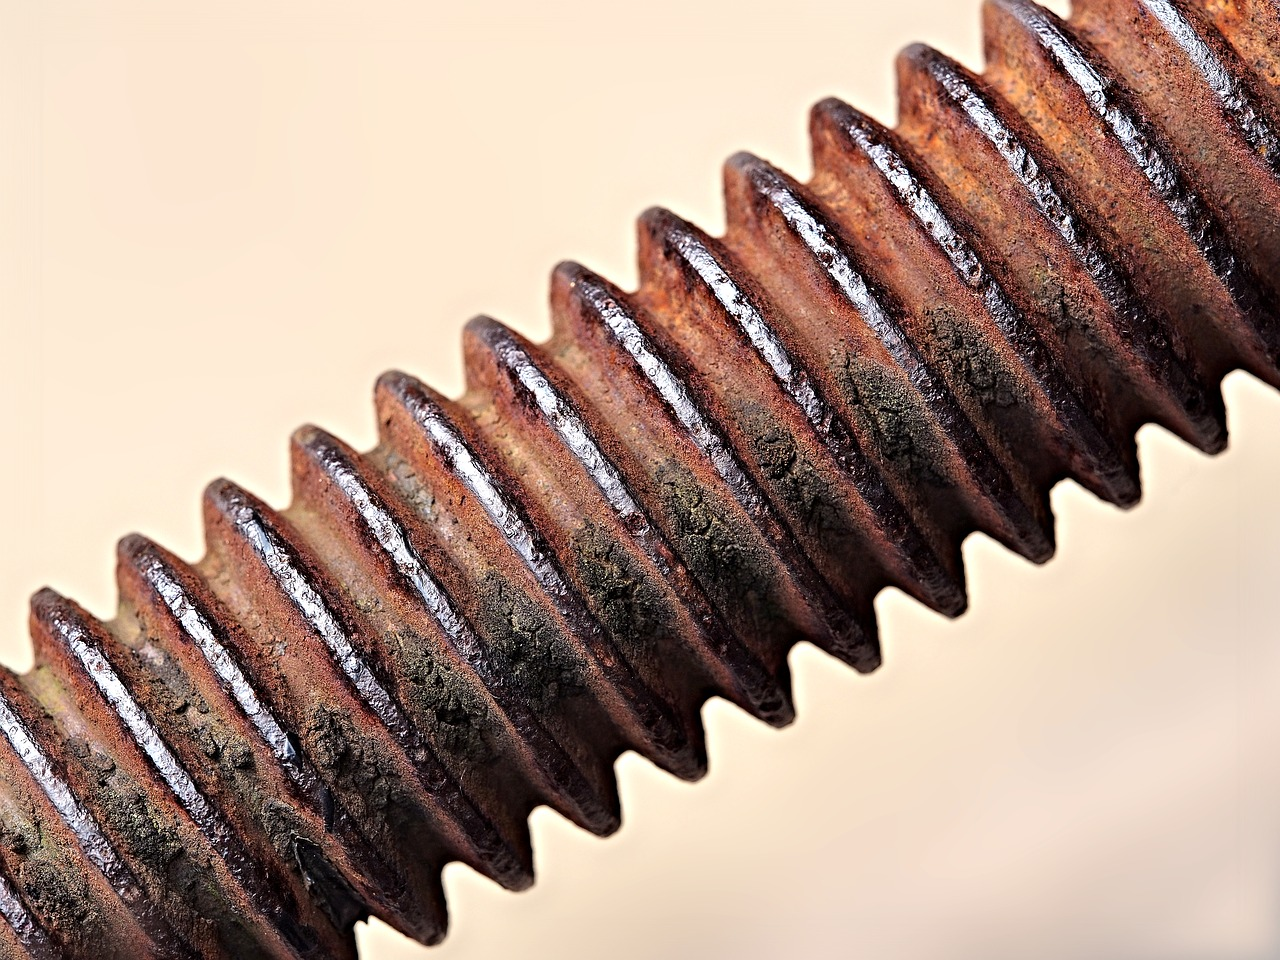 A threaded bolt